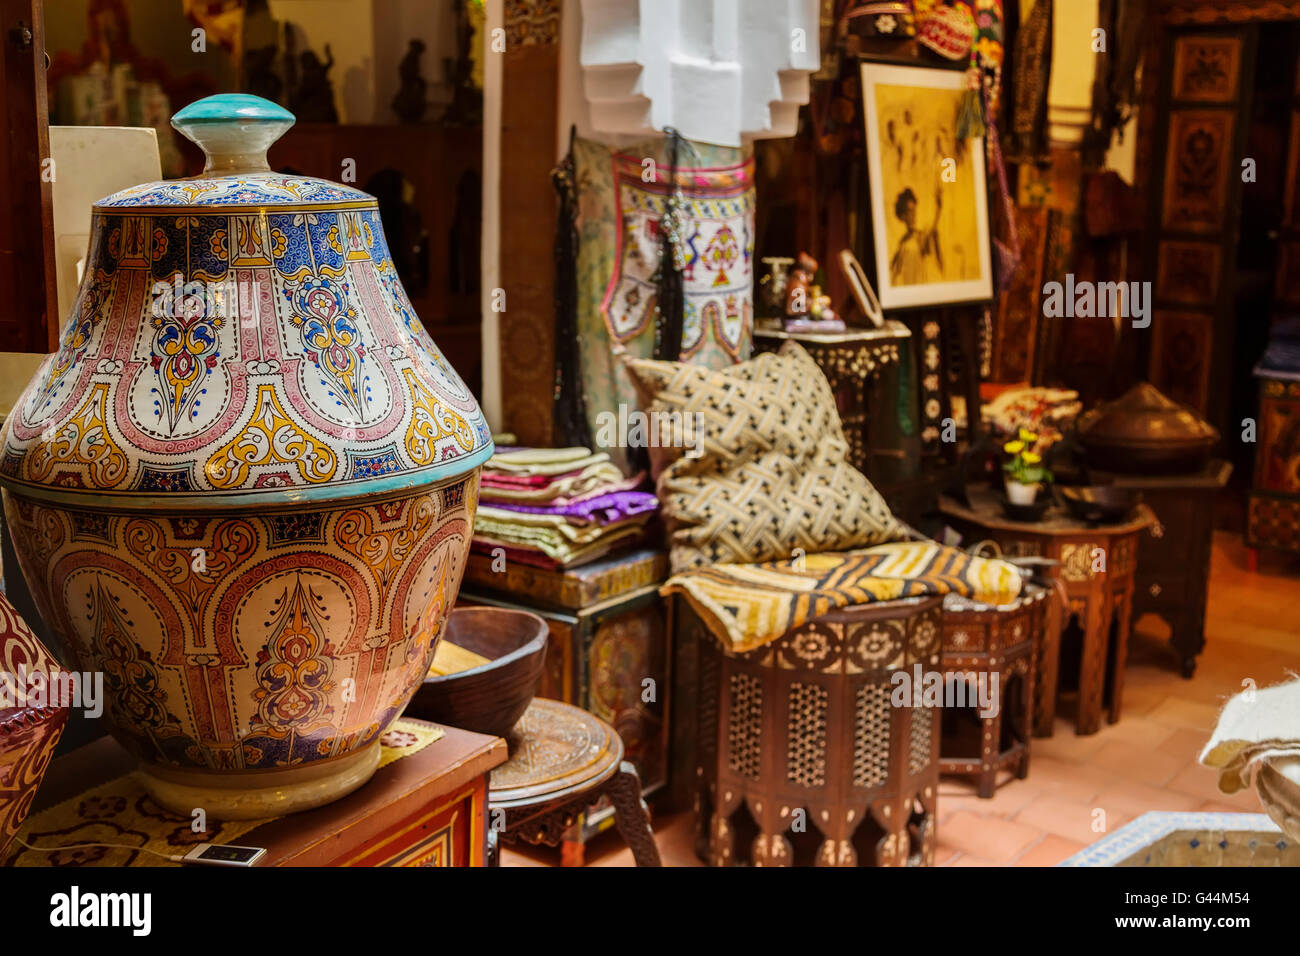 Antiques dealer and souvenirs shop. Medina Grand Socco, the great souk, old city Tangier. Morocco Africa - Stock Image